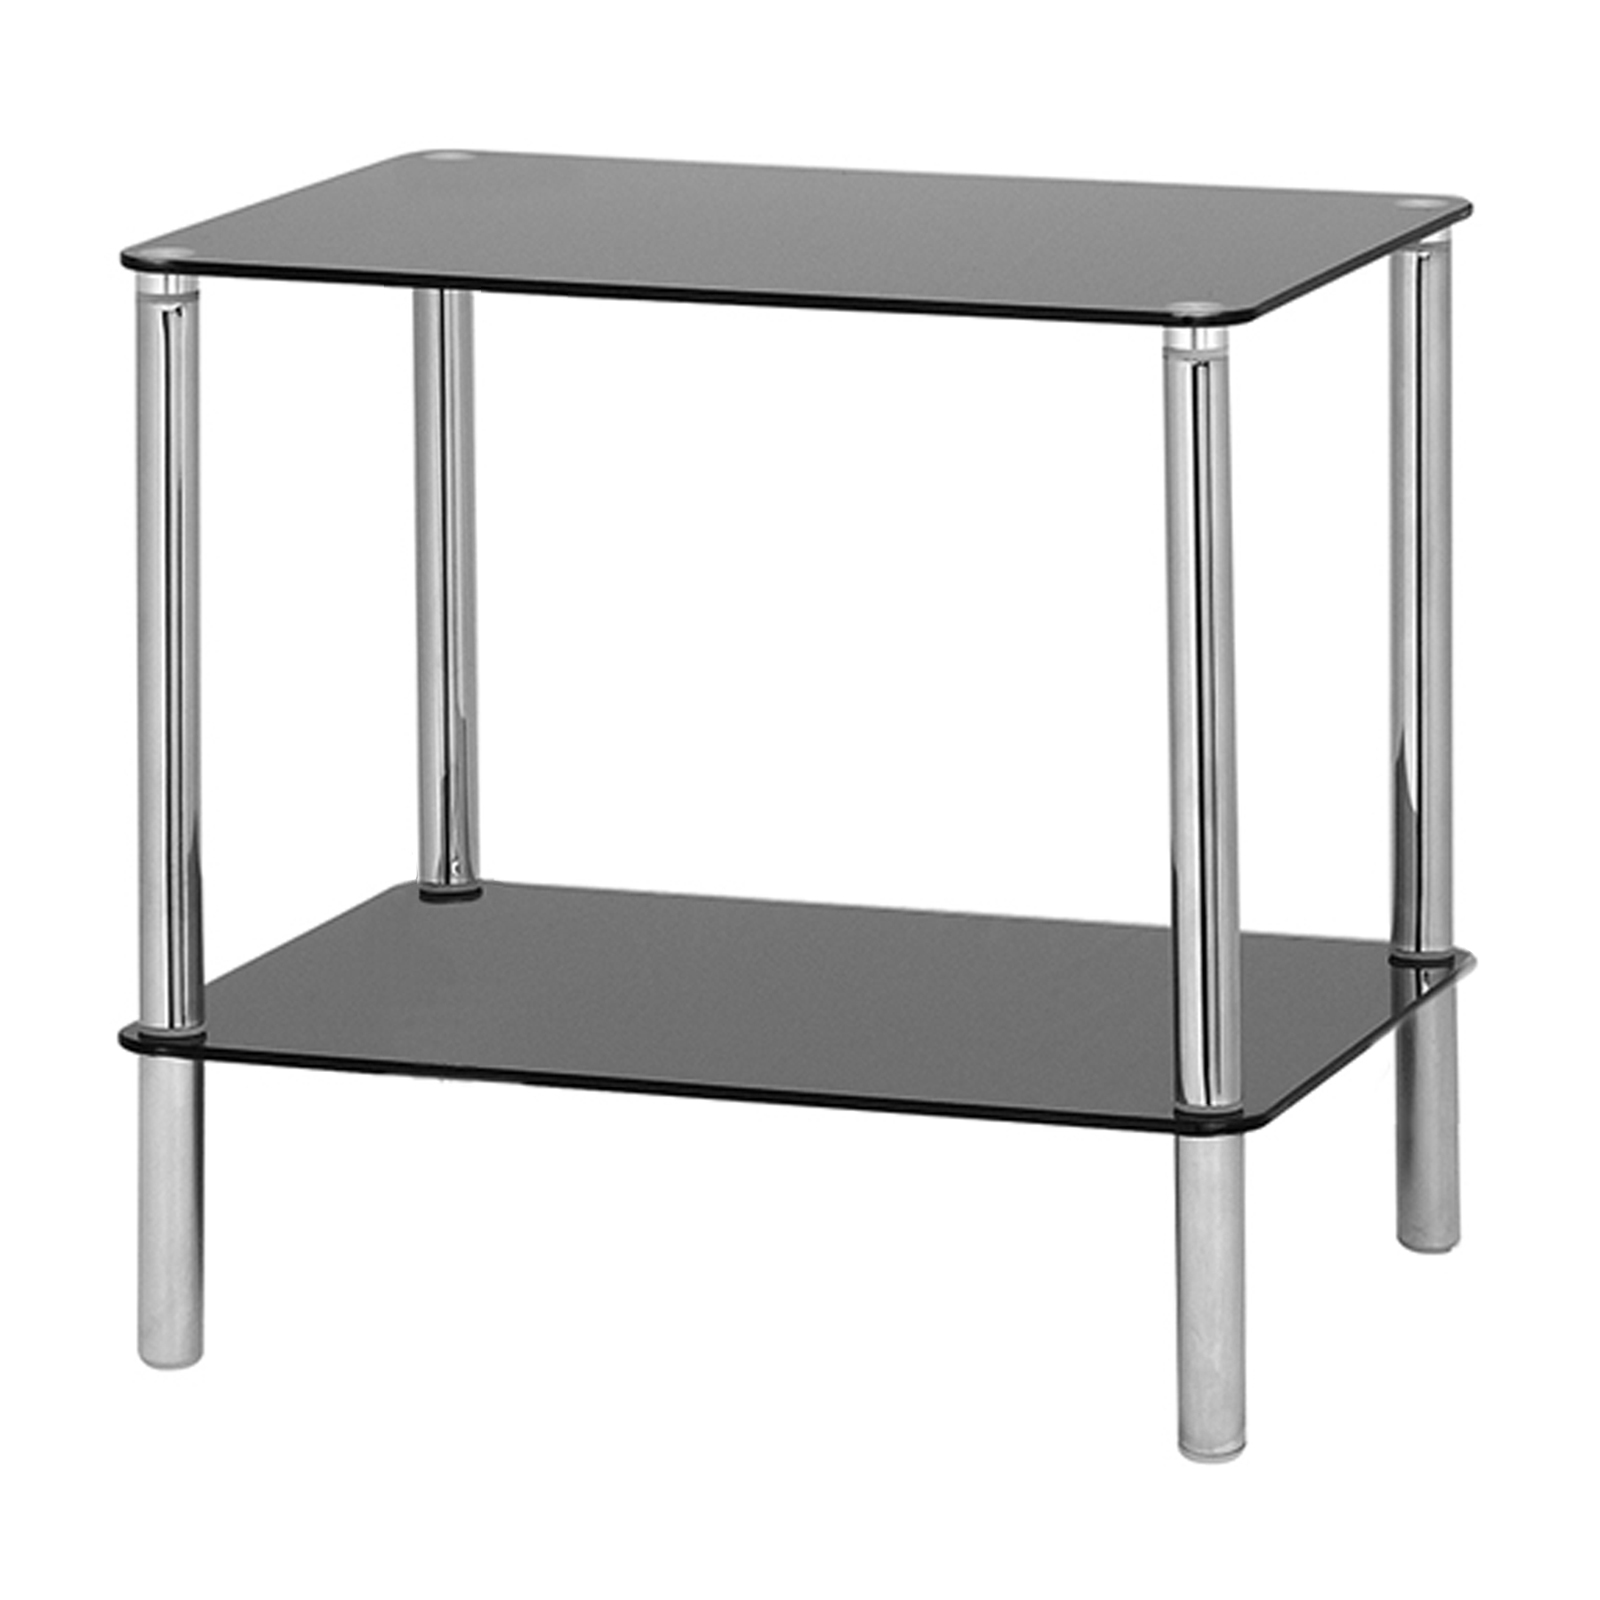 Hartleys Glass Side/End Table - 2 Tier - Black